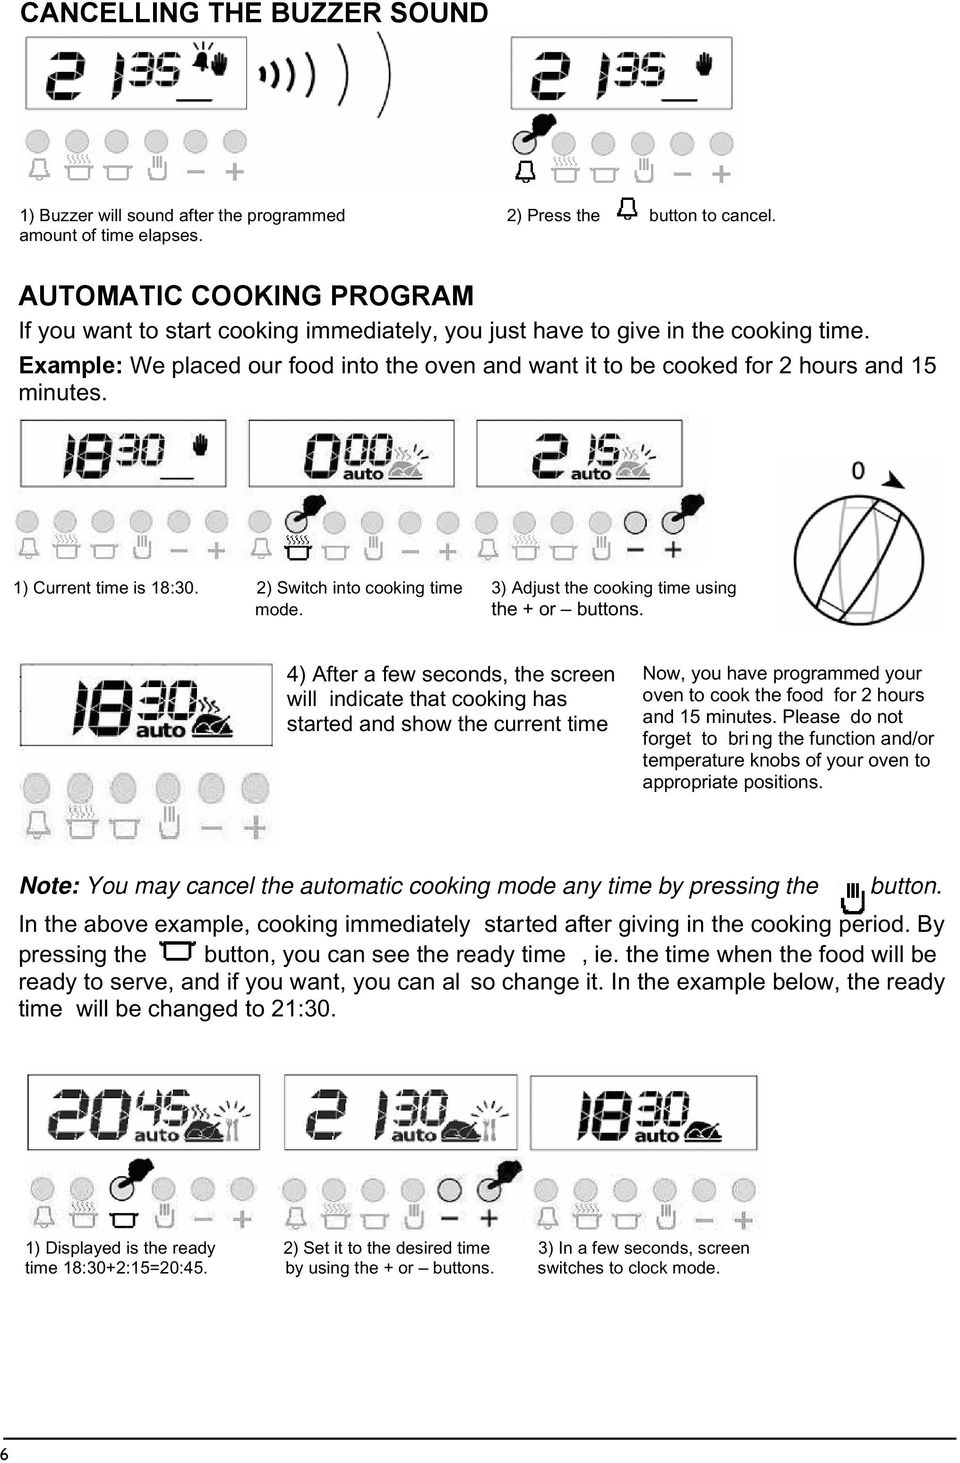 Example: We placed our food into the oven and want it to be cooked for hours and 5 minutes. ) Current time is 8:0. ) Switch into cooking time ) Adjust the cooking time using mode. the + or buttons.